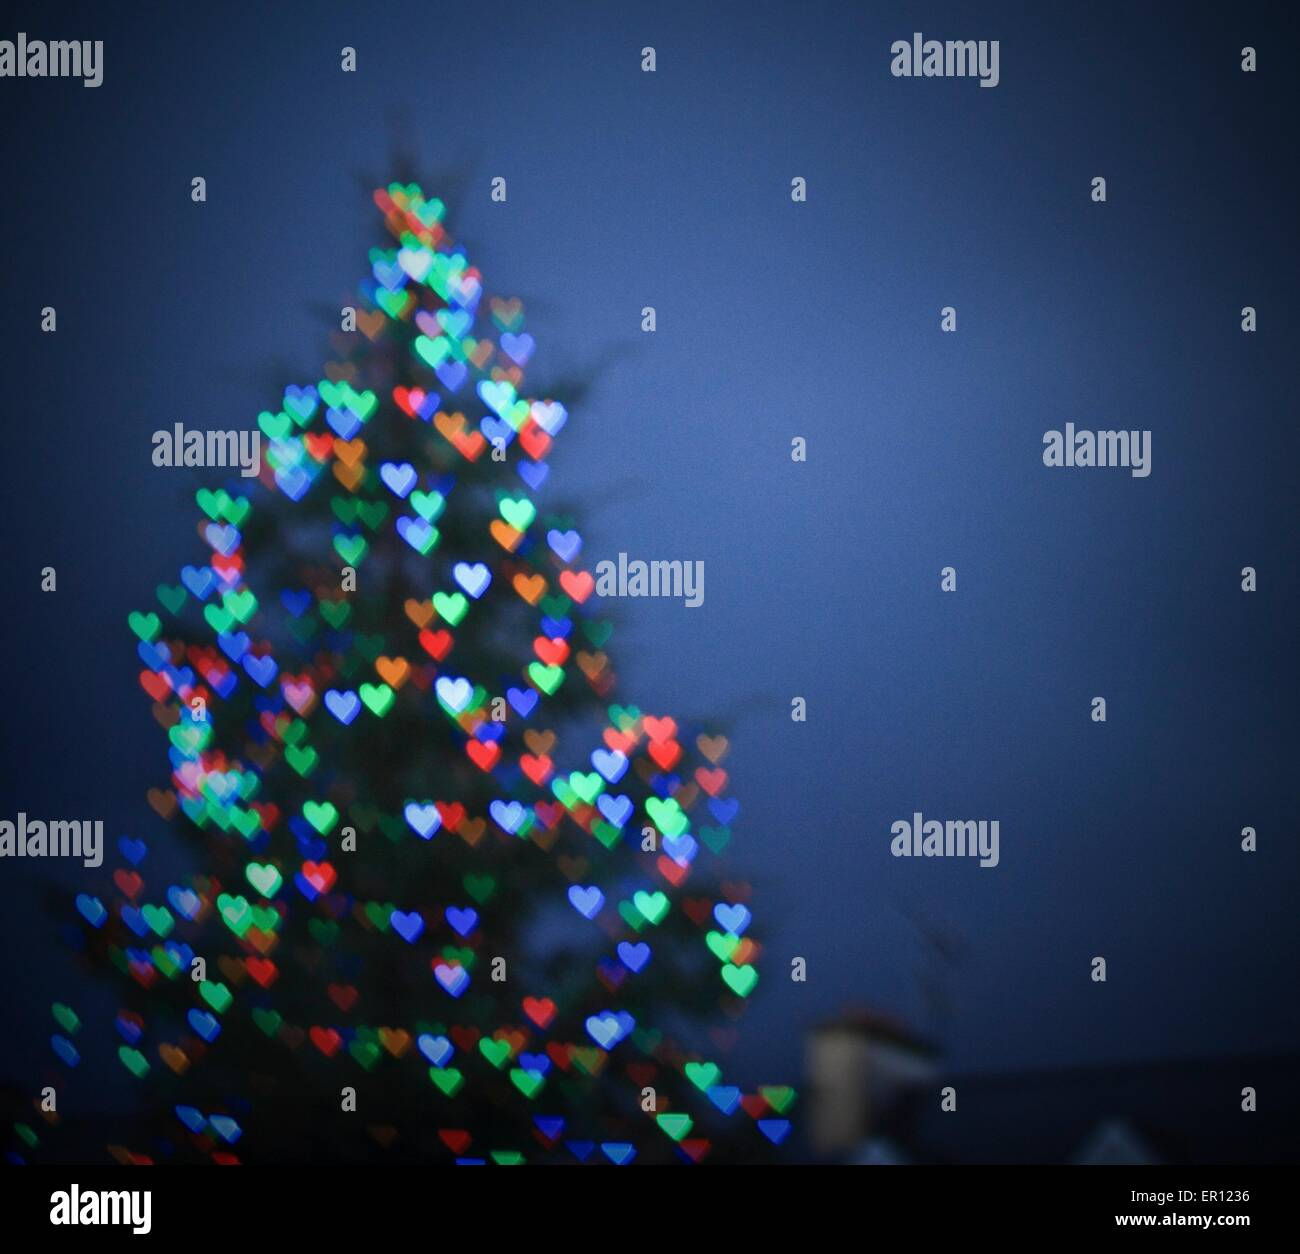 Blurry Christmas Tree With Bokeh Heart Shaped Lights